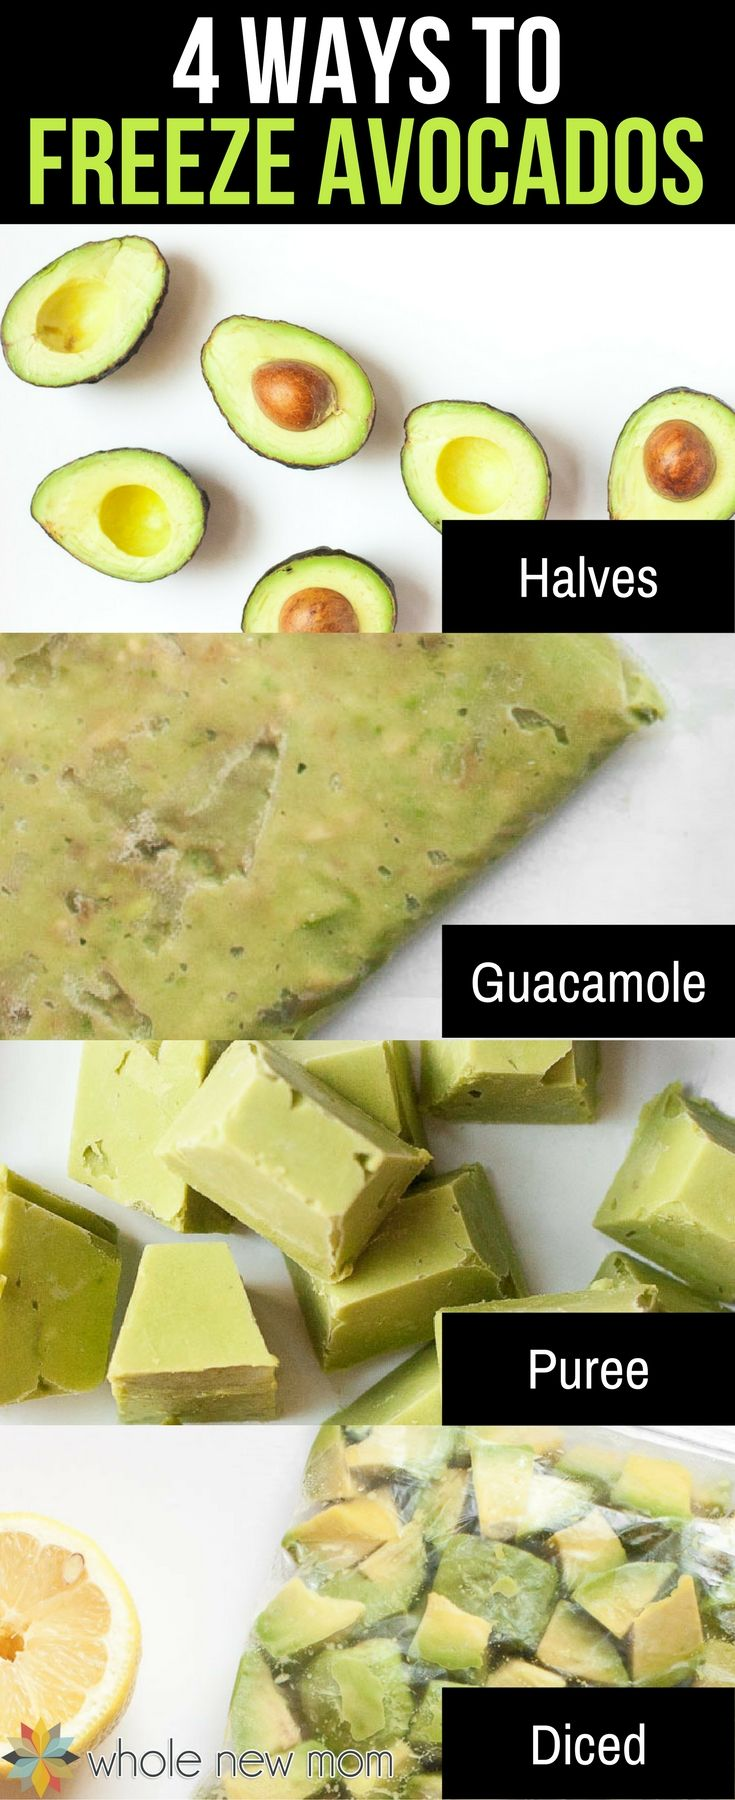 Did you know that freezing avocados really works? Here are 4 Ways to Freeze Avocados so you can grab a bunch when they're on sale!